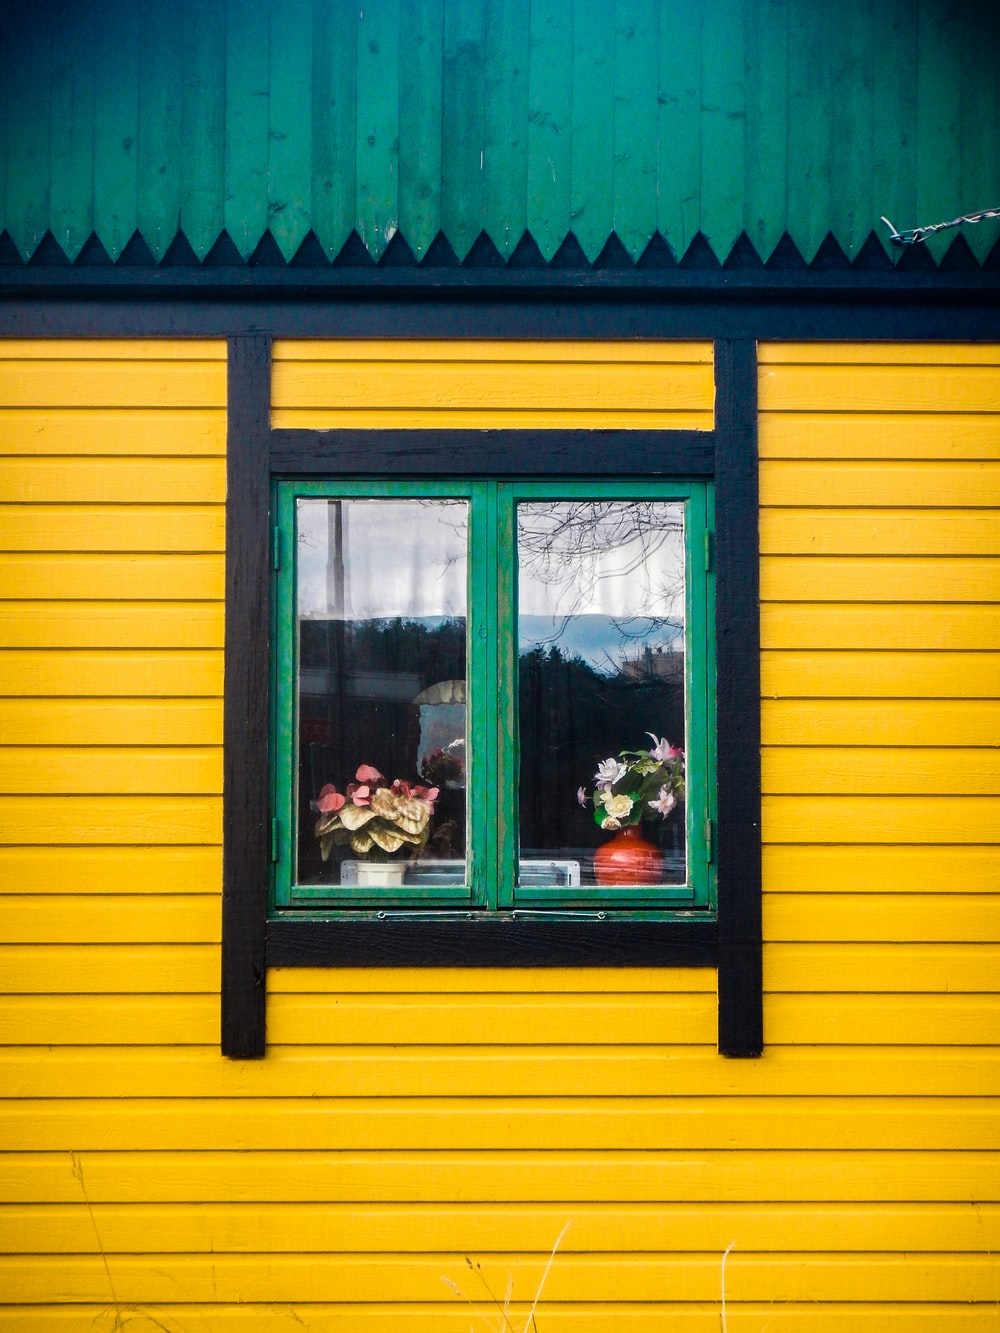 yellow and black painted house with green framed glass window